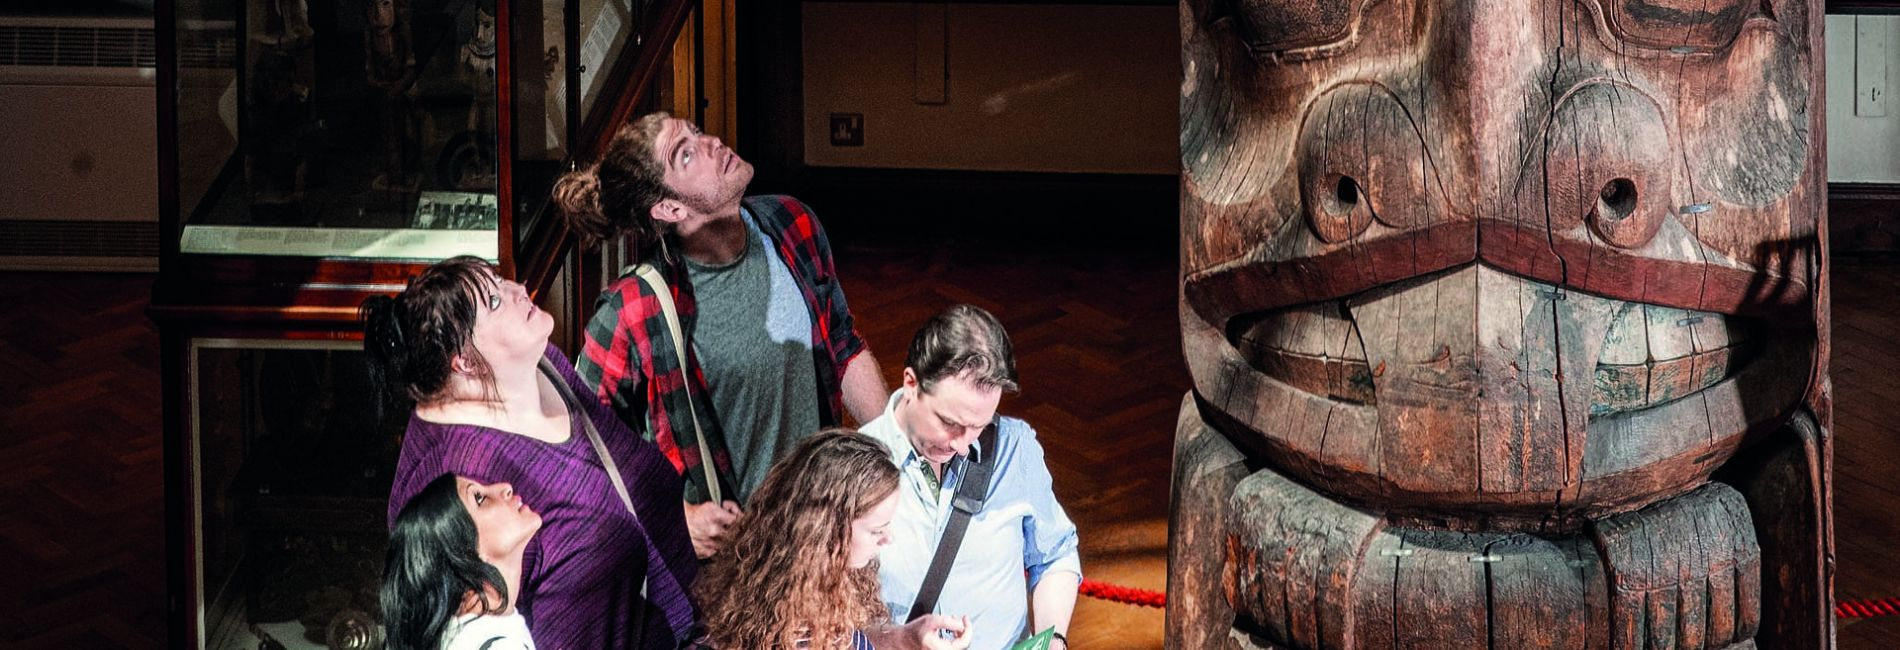 five people looking at a totem pole in the Museum of Archaeology and Anthropology